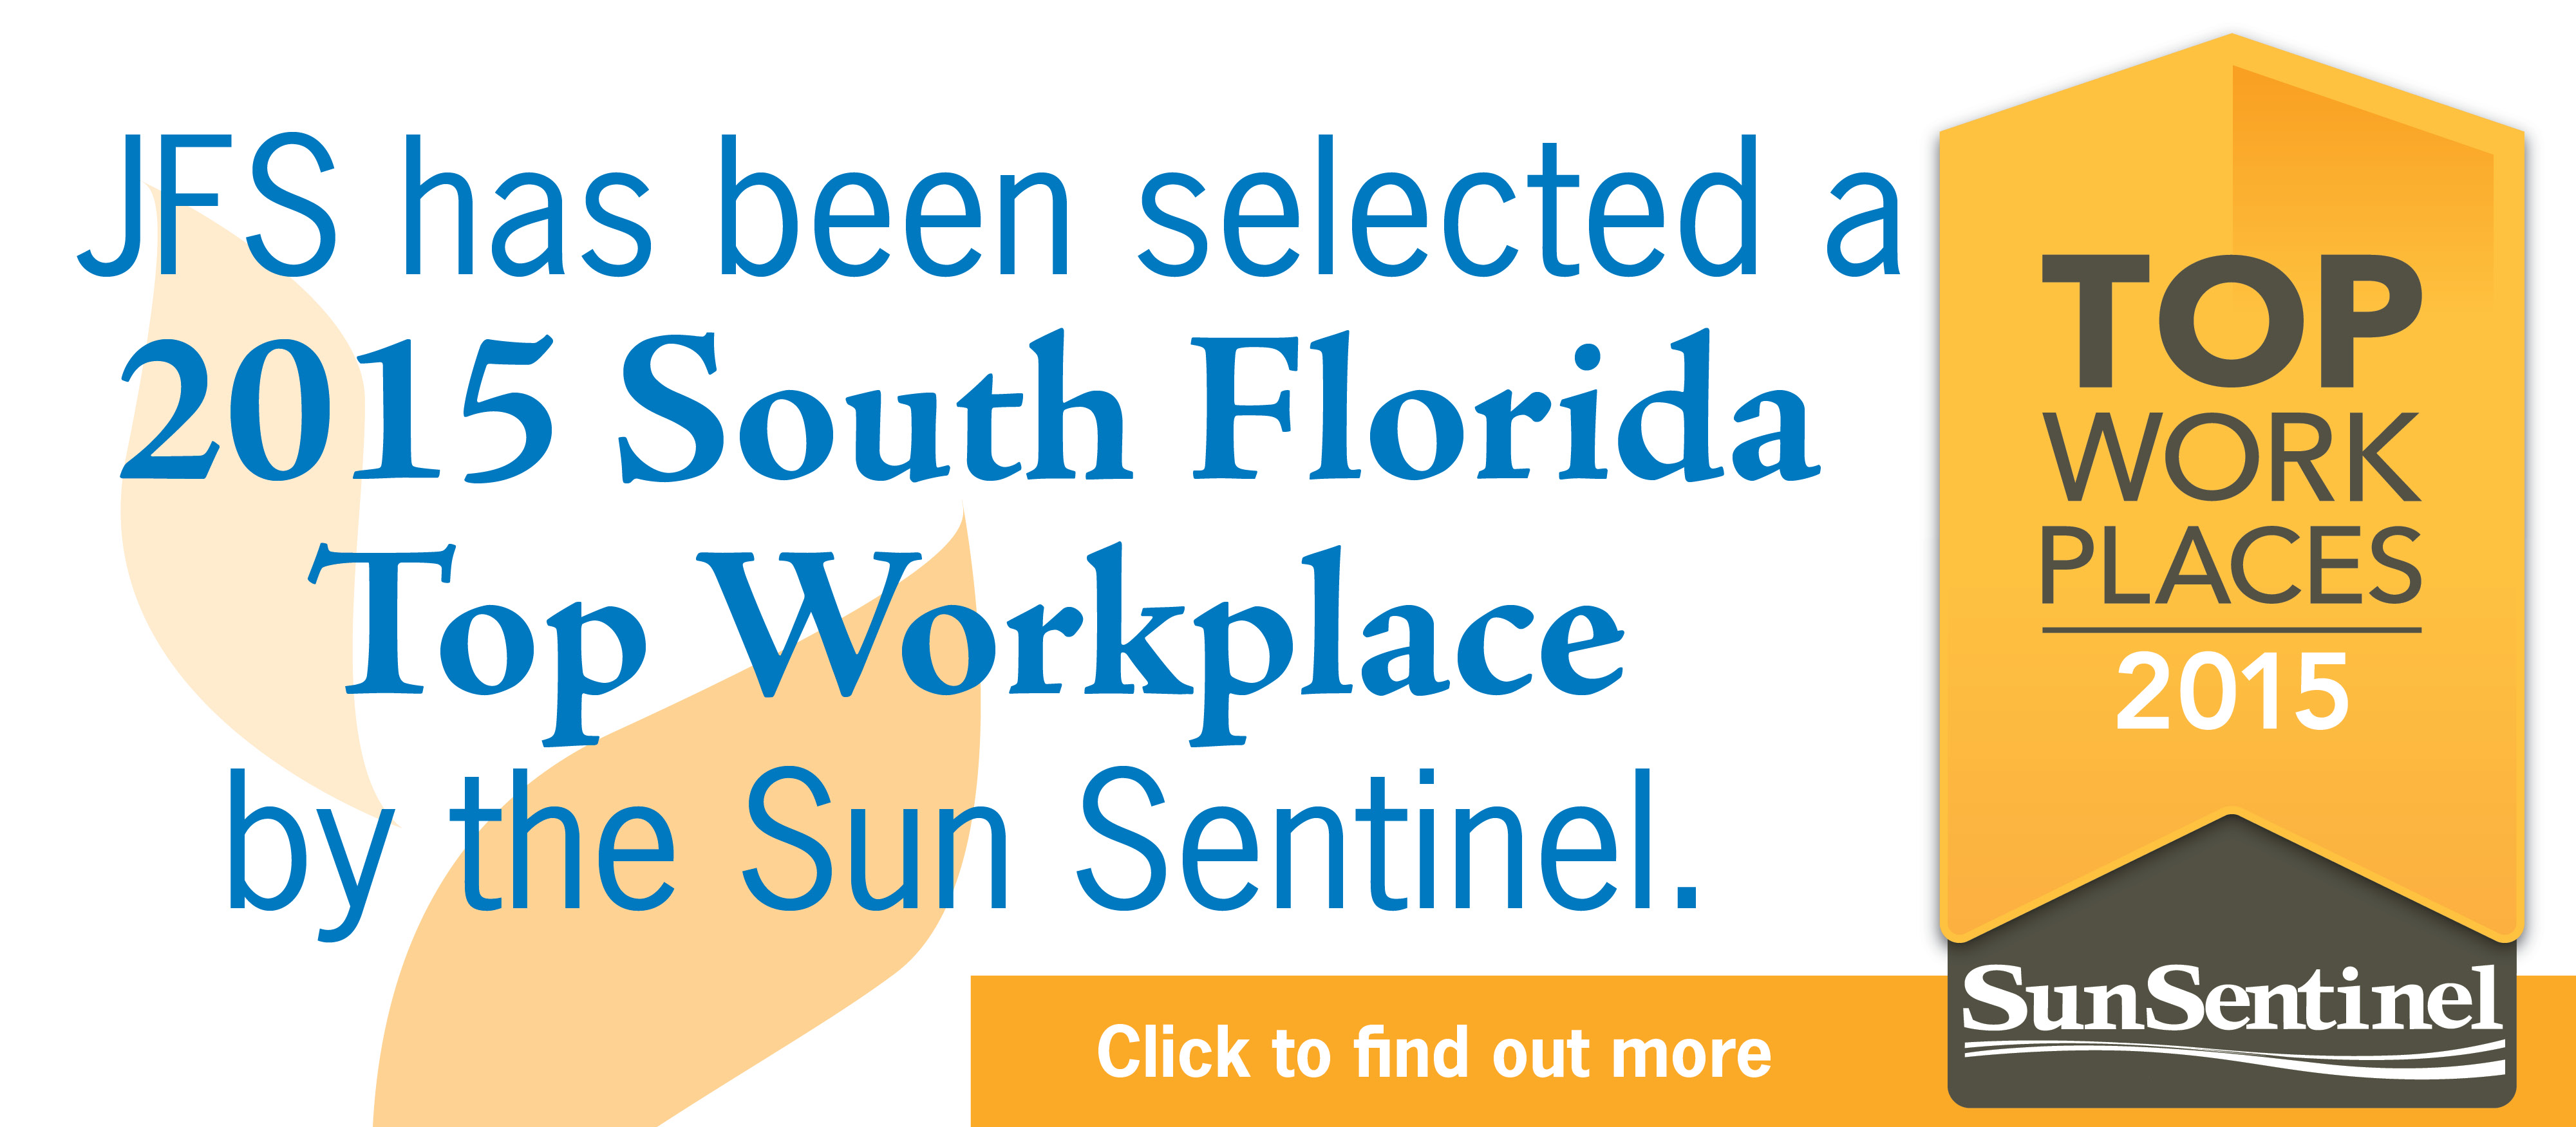 JFS NAMED A 2015 SOUTH FLORIDA TOP WORKPLACE BY THE SUN SENTINEL